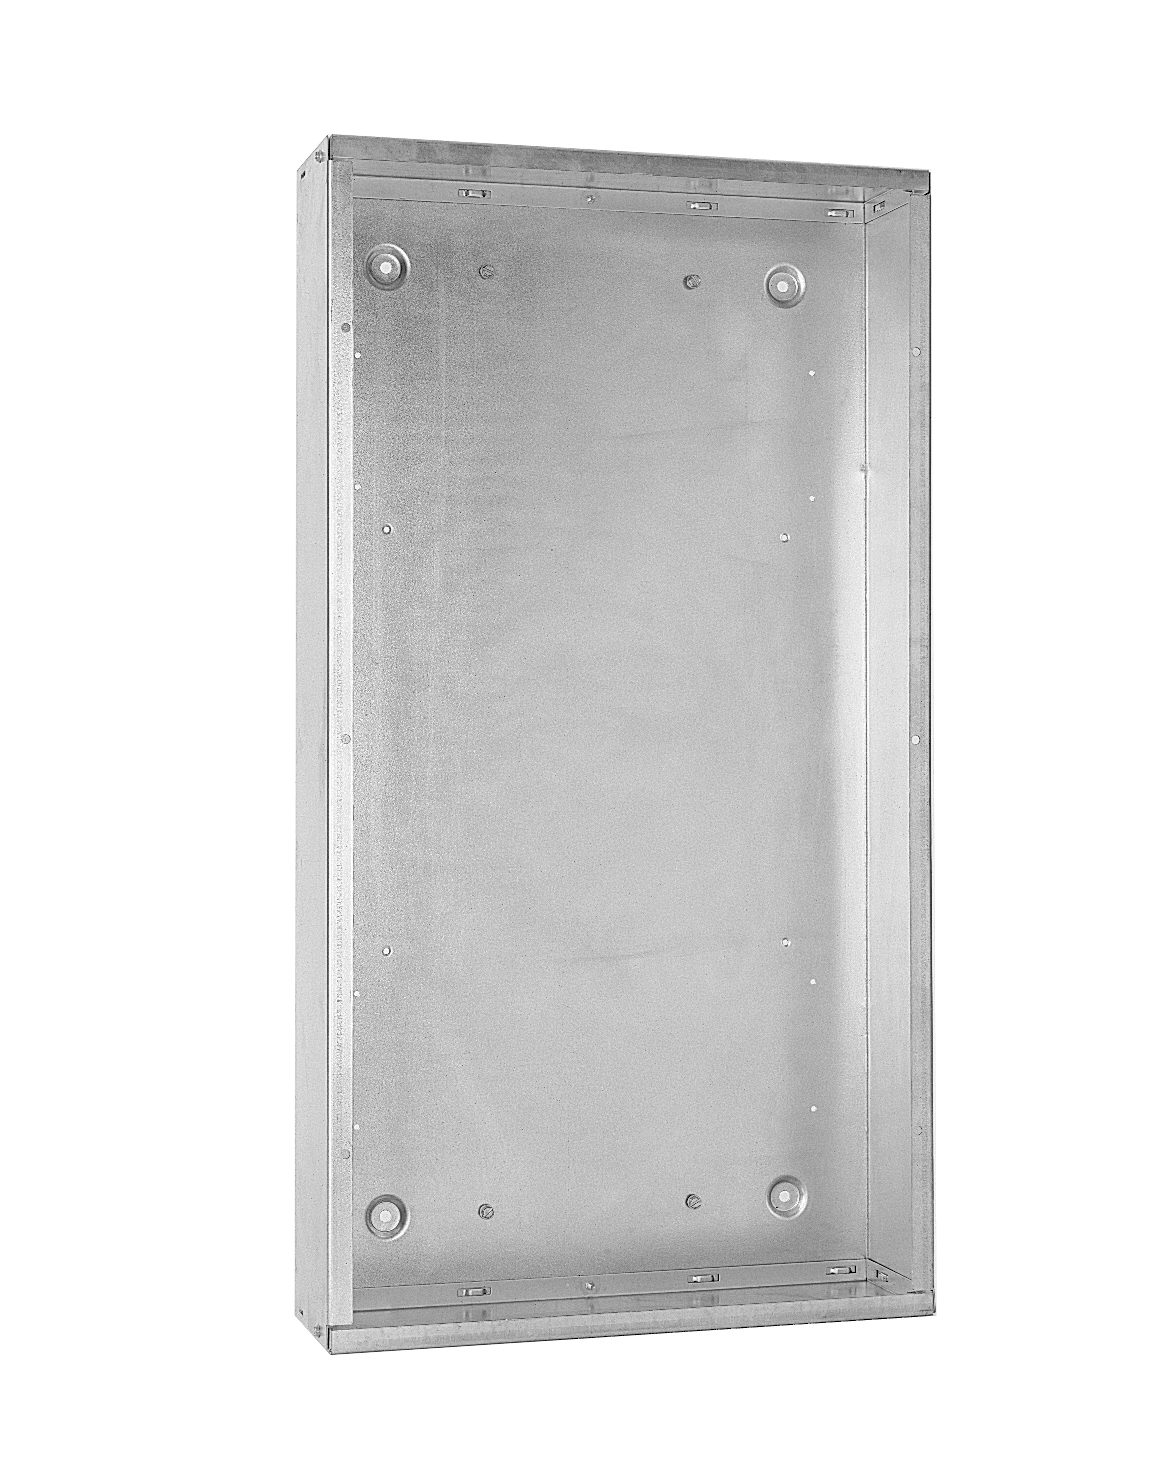 GE,AB37B,General Electric AB37B Panel Board Box, 225/400/600/800 AMP, Enclosure: NEMA 1, Size: 37.500 IN Height X 20.000 IN Width, Consist of: Blank Endwall